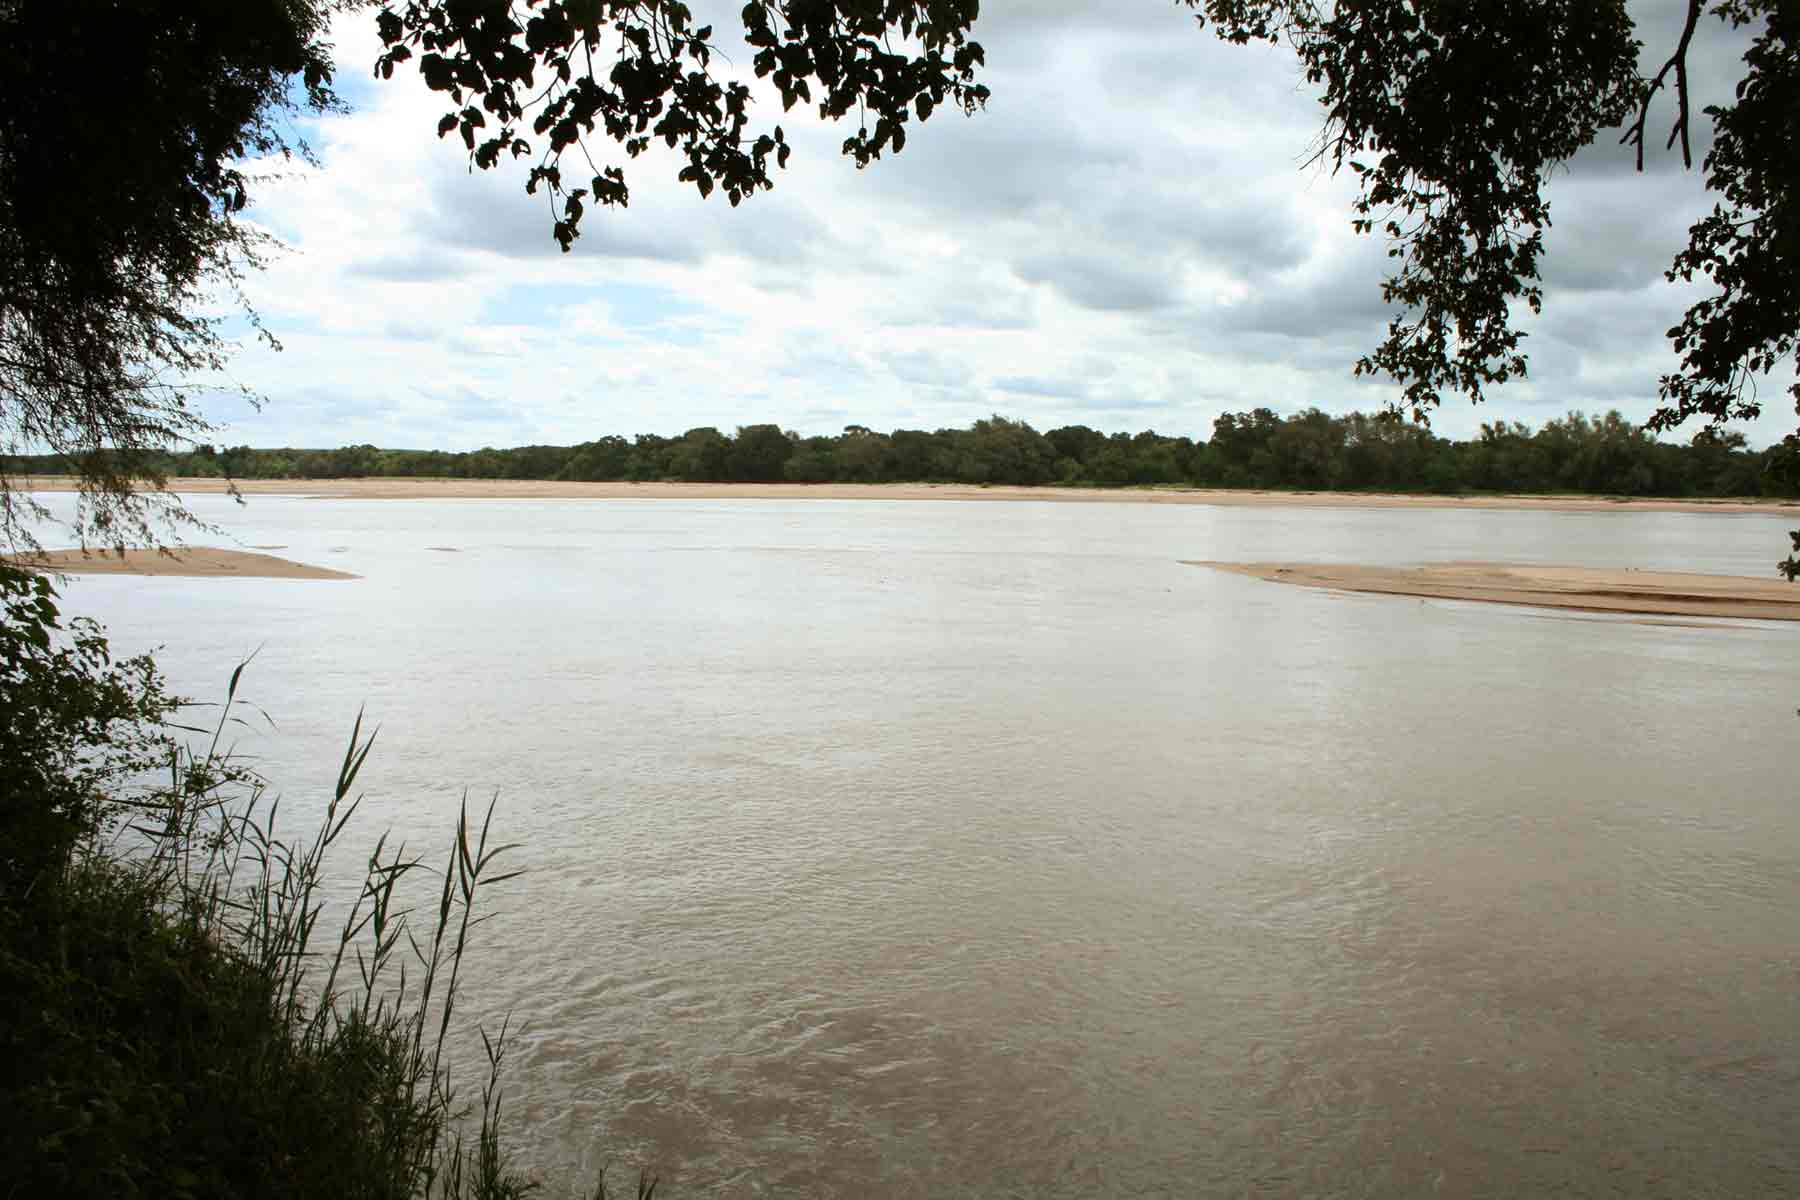 Shashe River in flood; a rare sight in this normally dry environment.